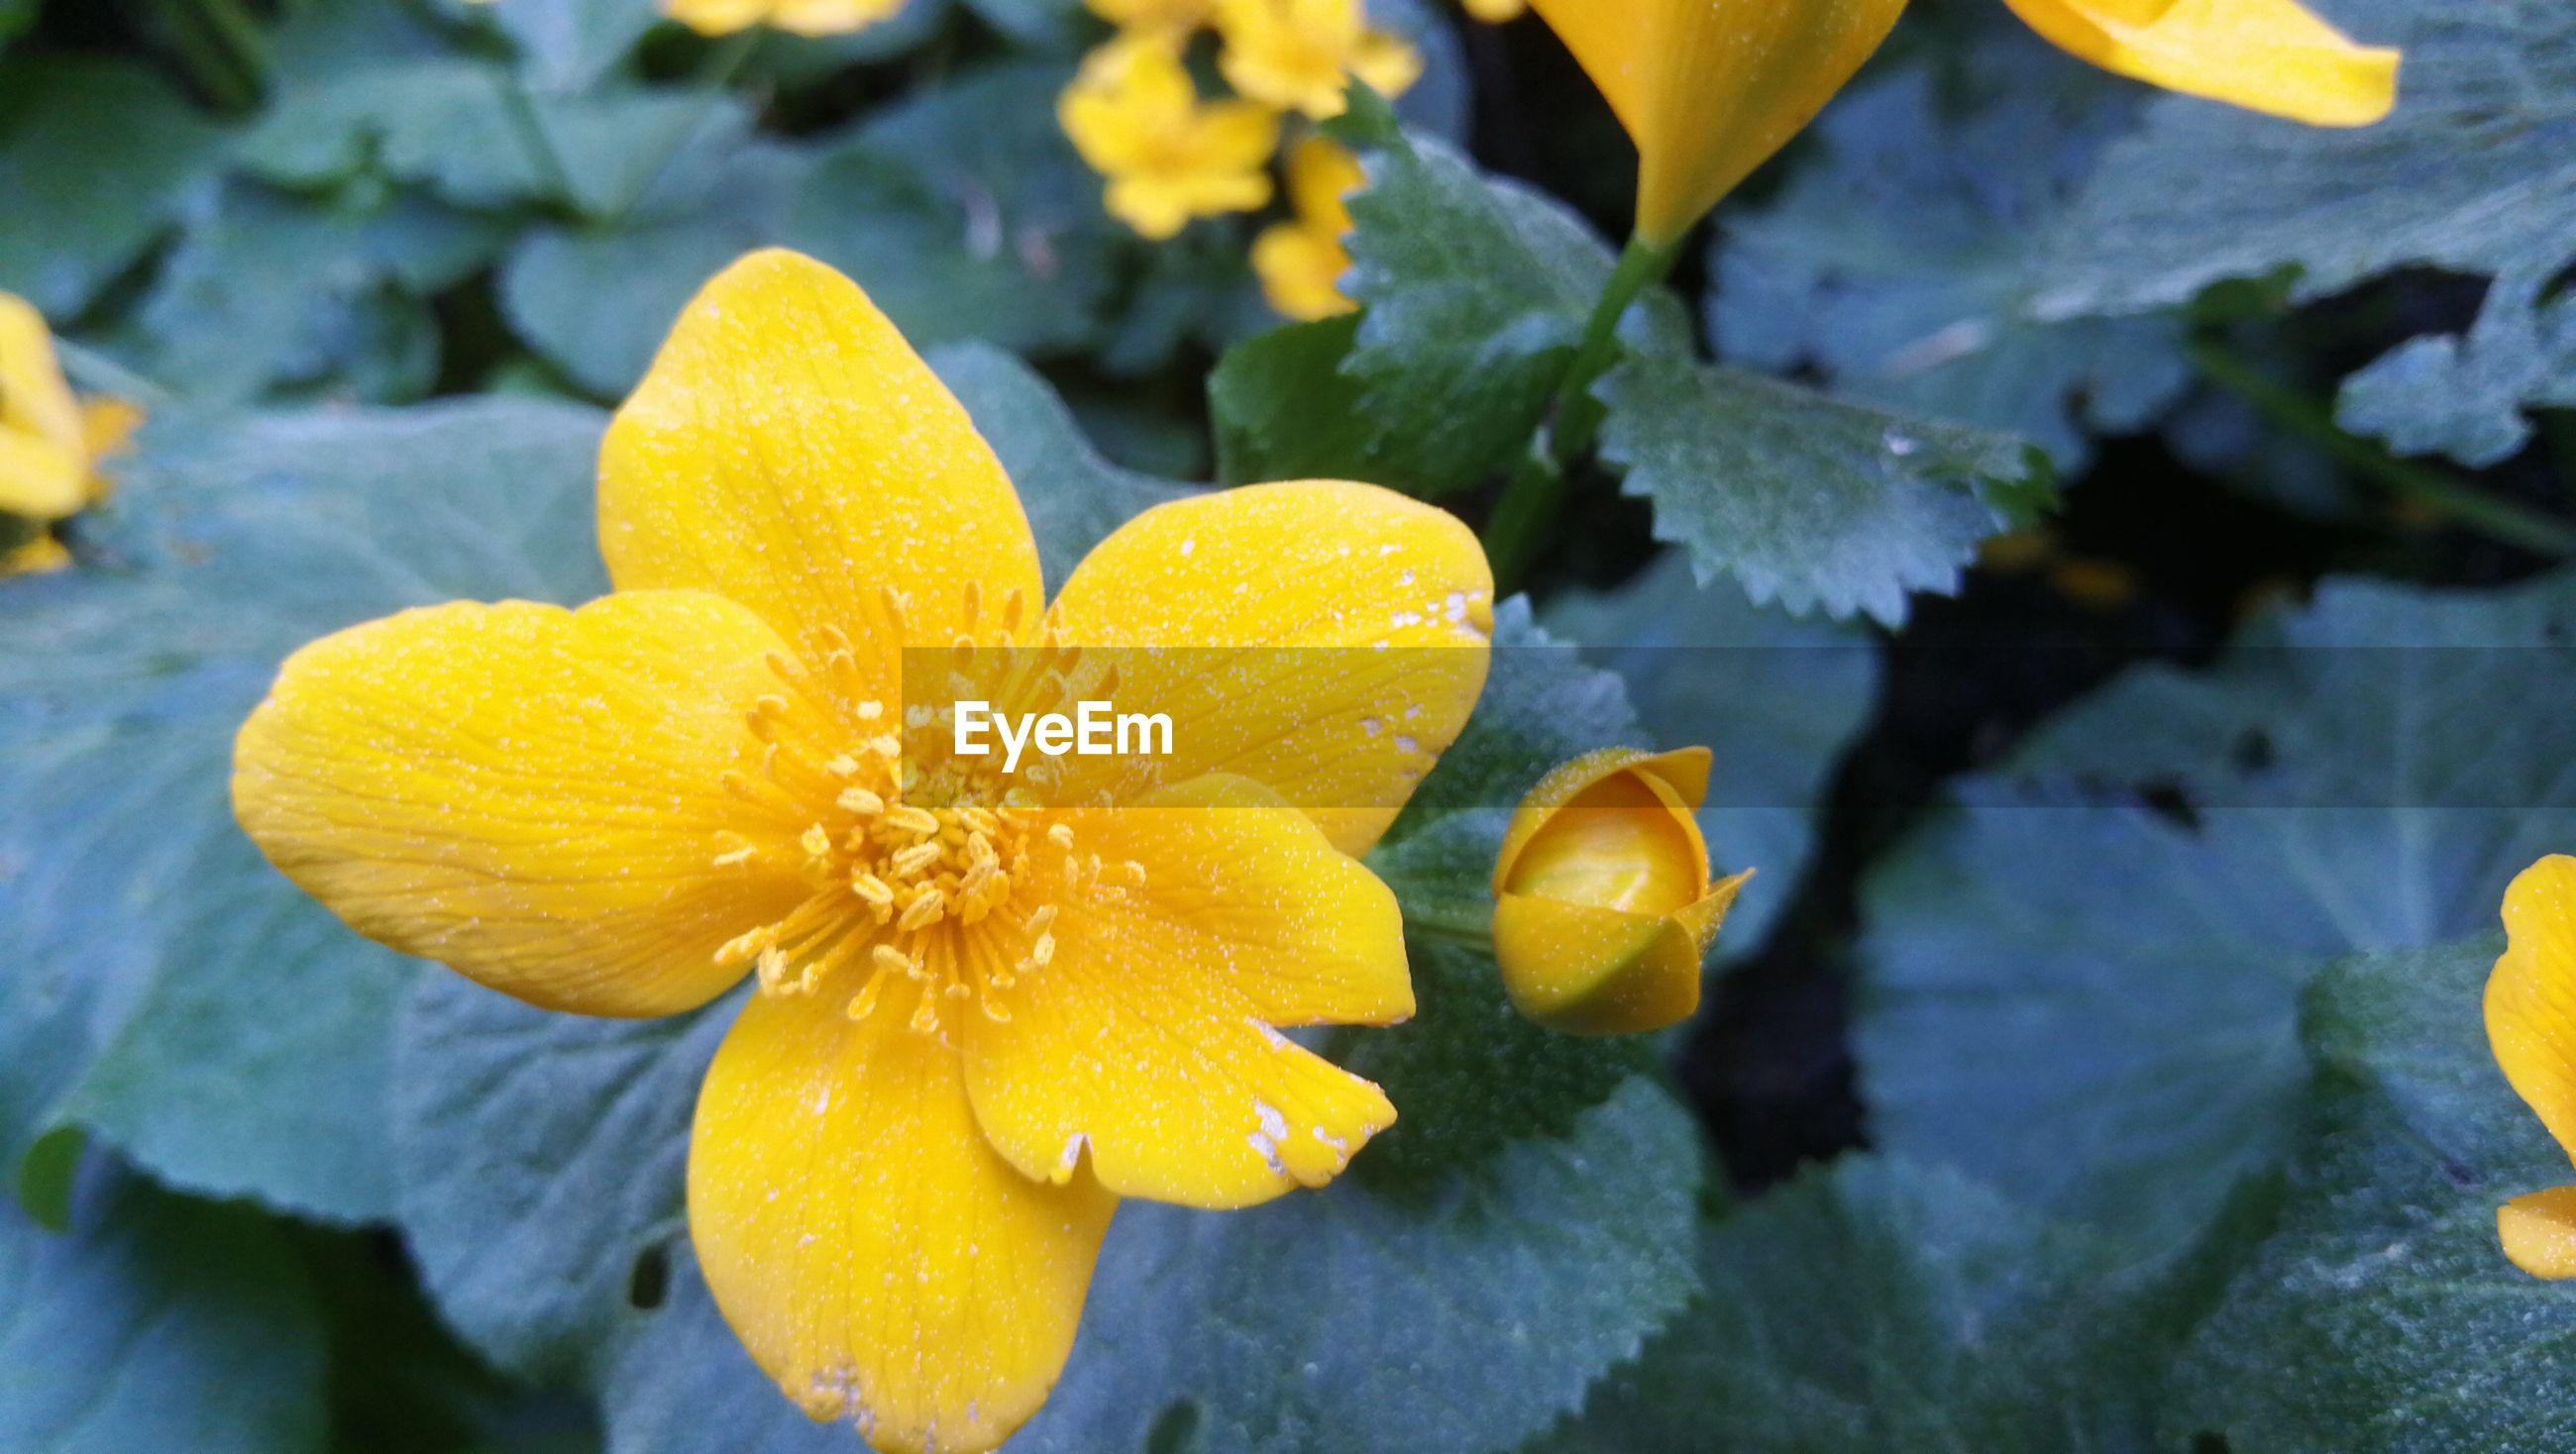 CLOSE-UP OF WATER DROPS ON YELLOW ROSE